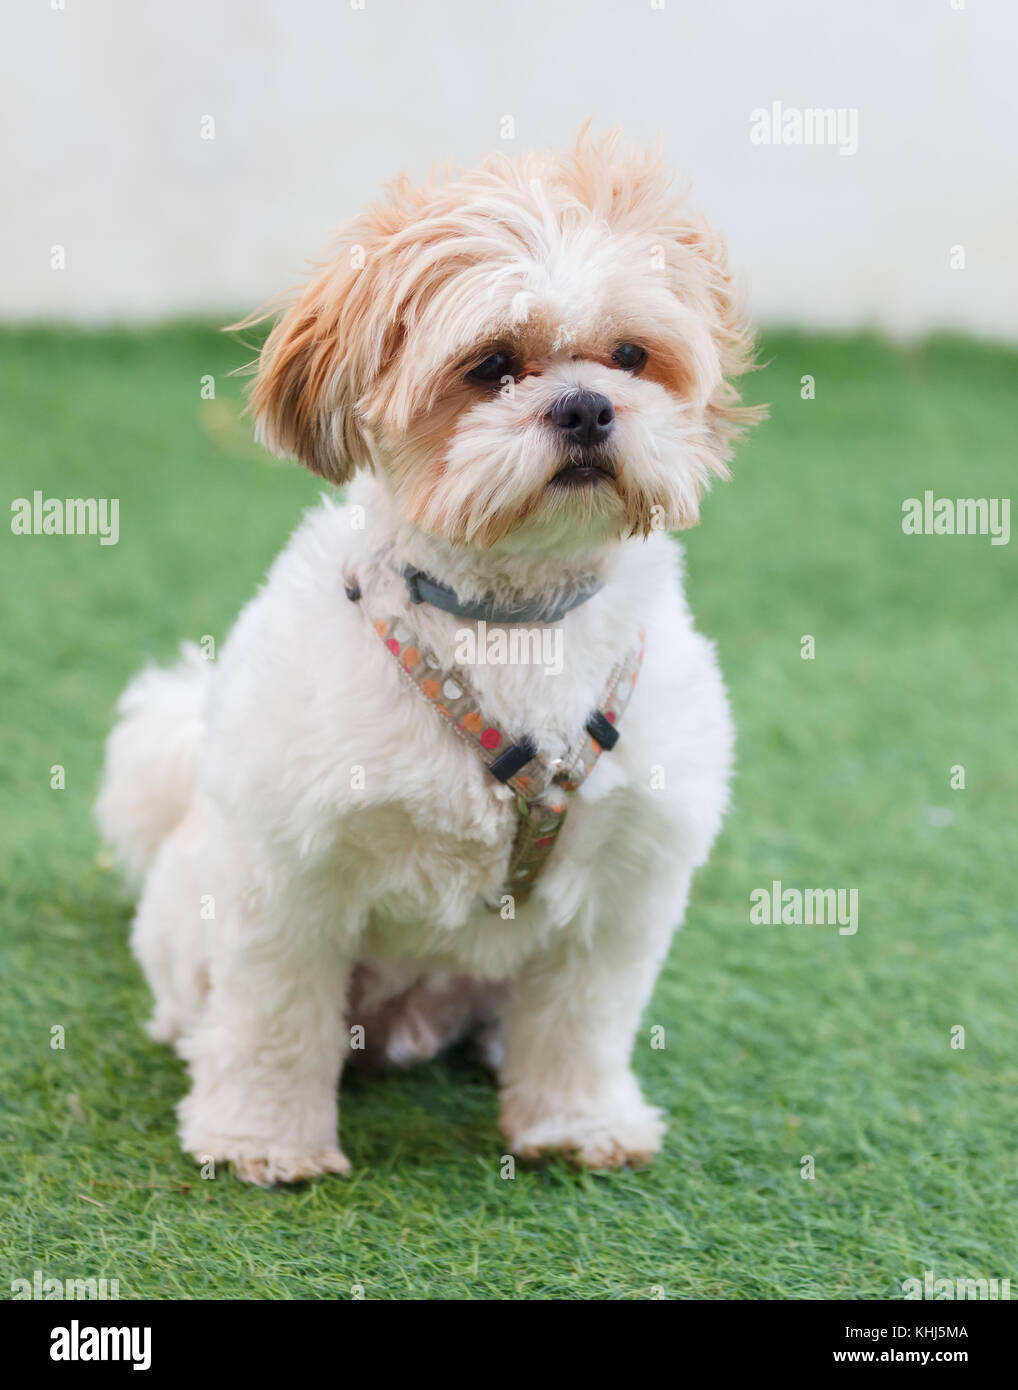 Portrait Of A Adorable Shih Tzu Dog With A Funny Face Stock Photo